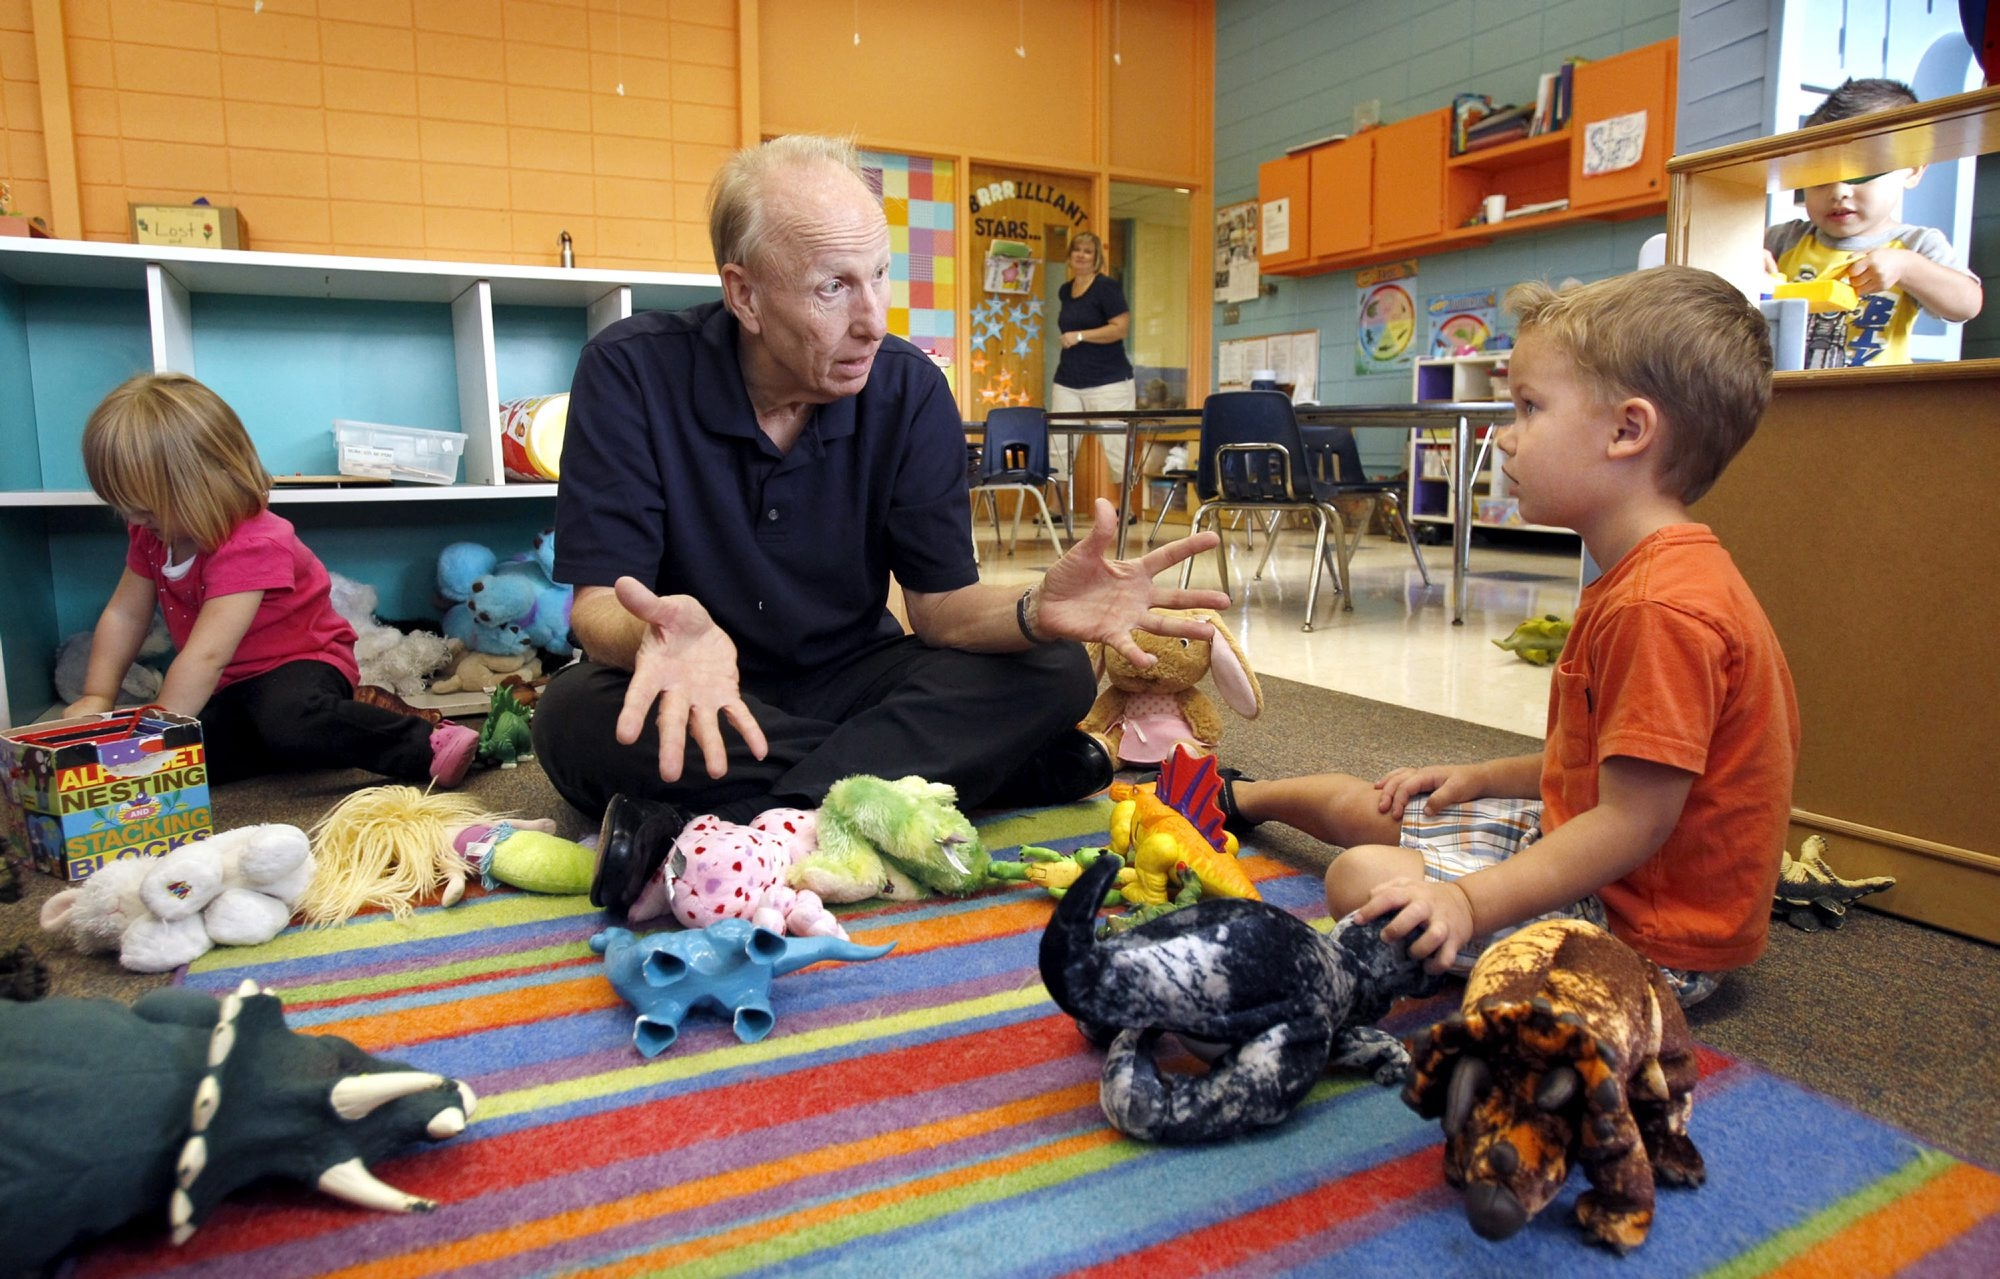 McClatchy Newspapers    Bill Brockman landed a post-retirement job at the Village Church Child and Family Development Center in Overland Park, Kan., where his duties include playing with the kids.